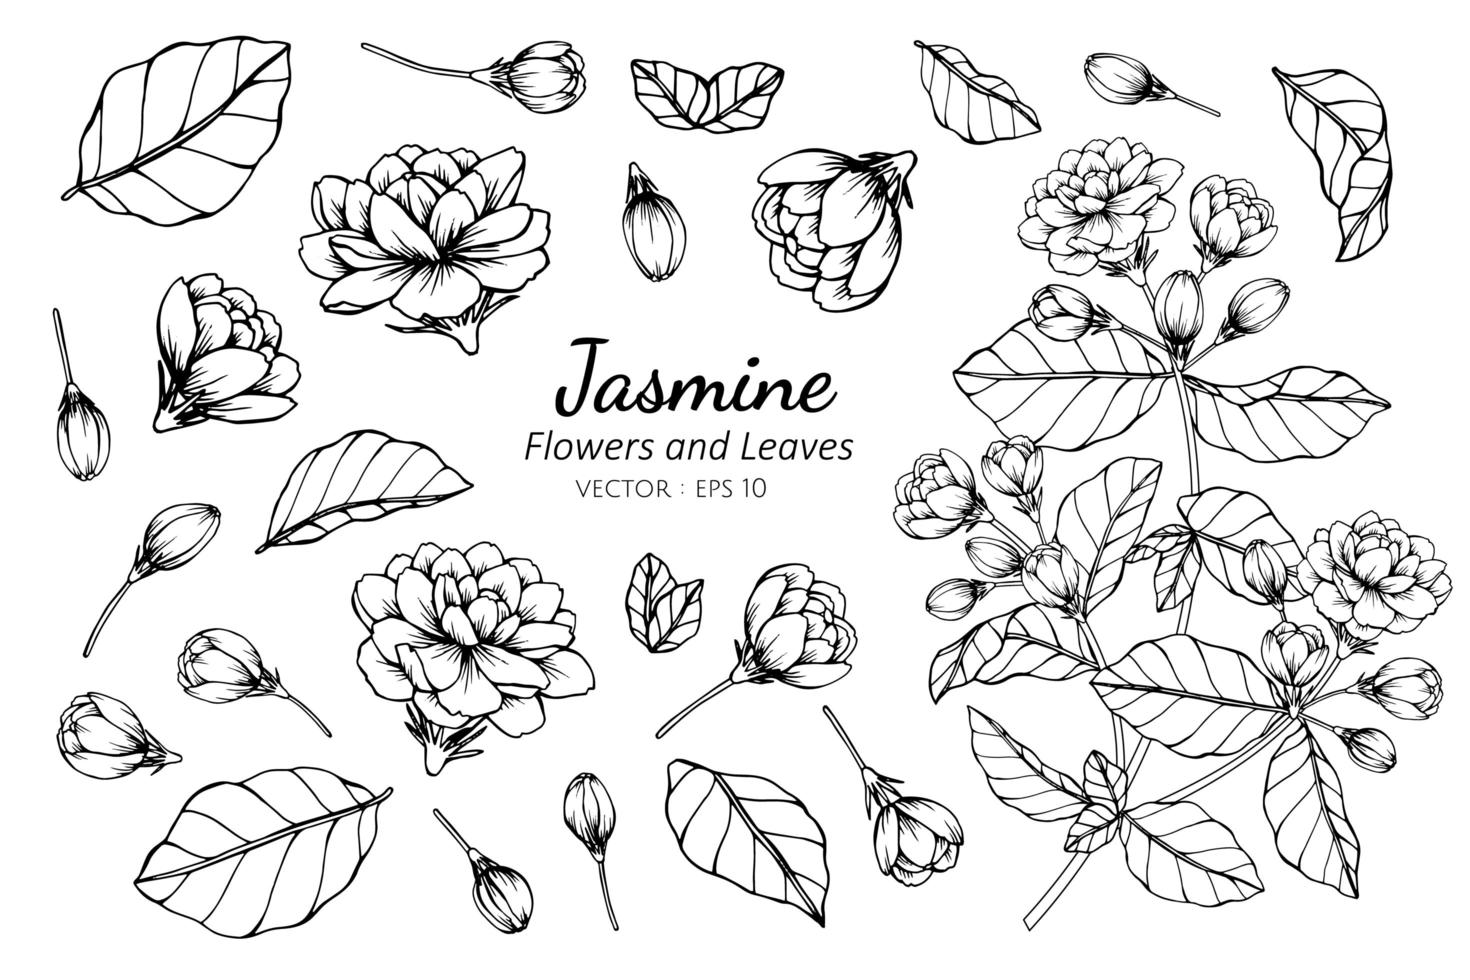 Collection of Jasmine flowers and leaves vector